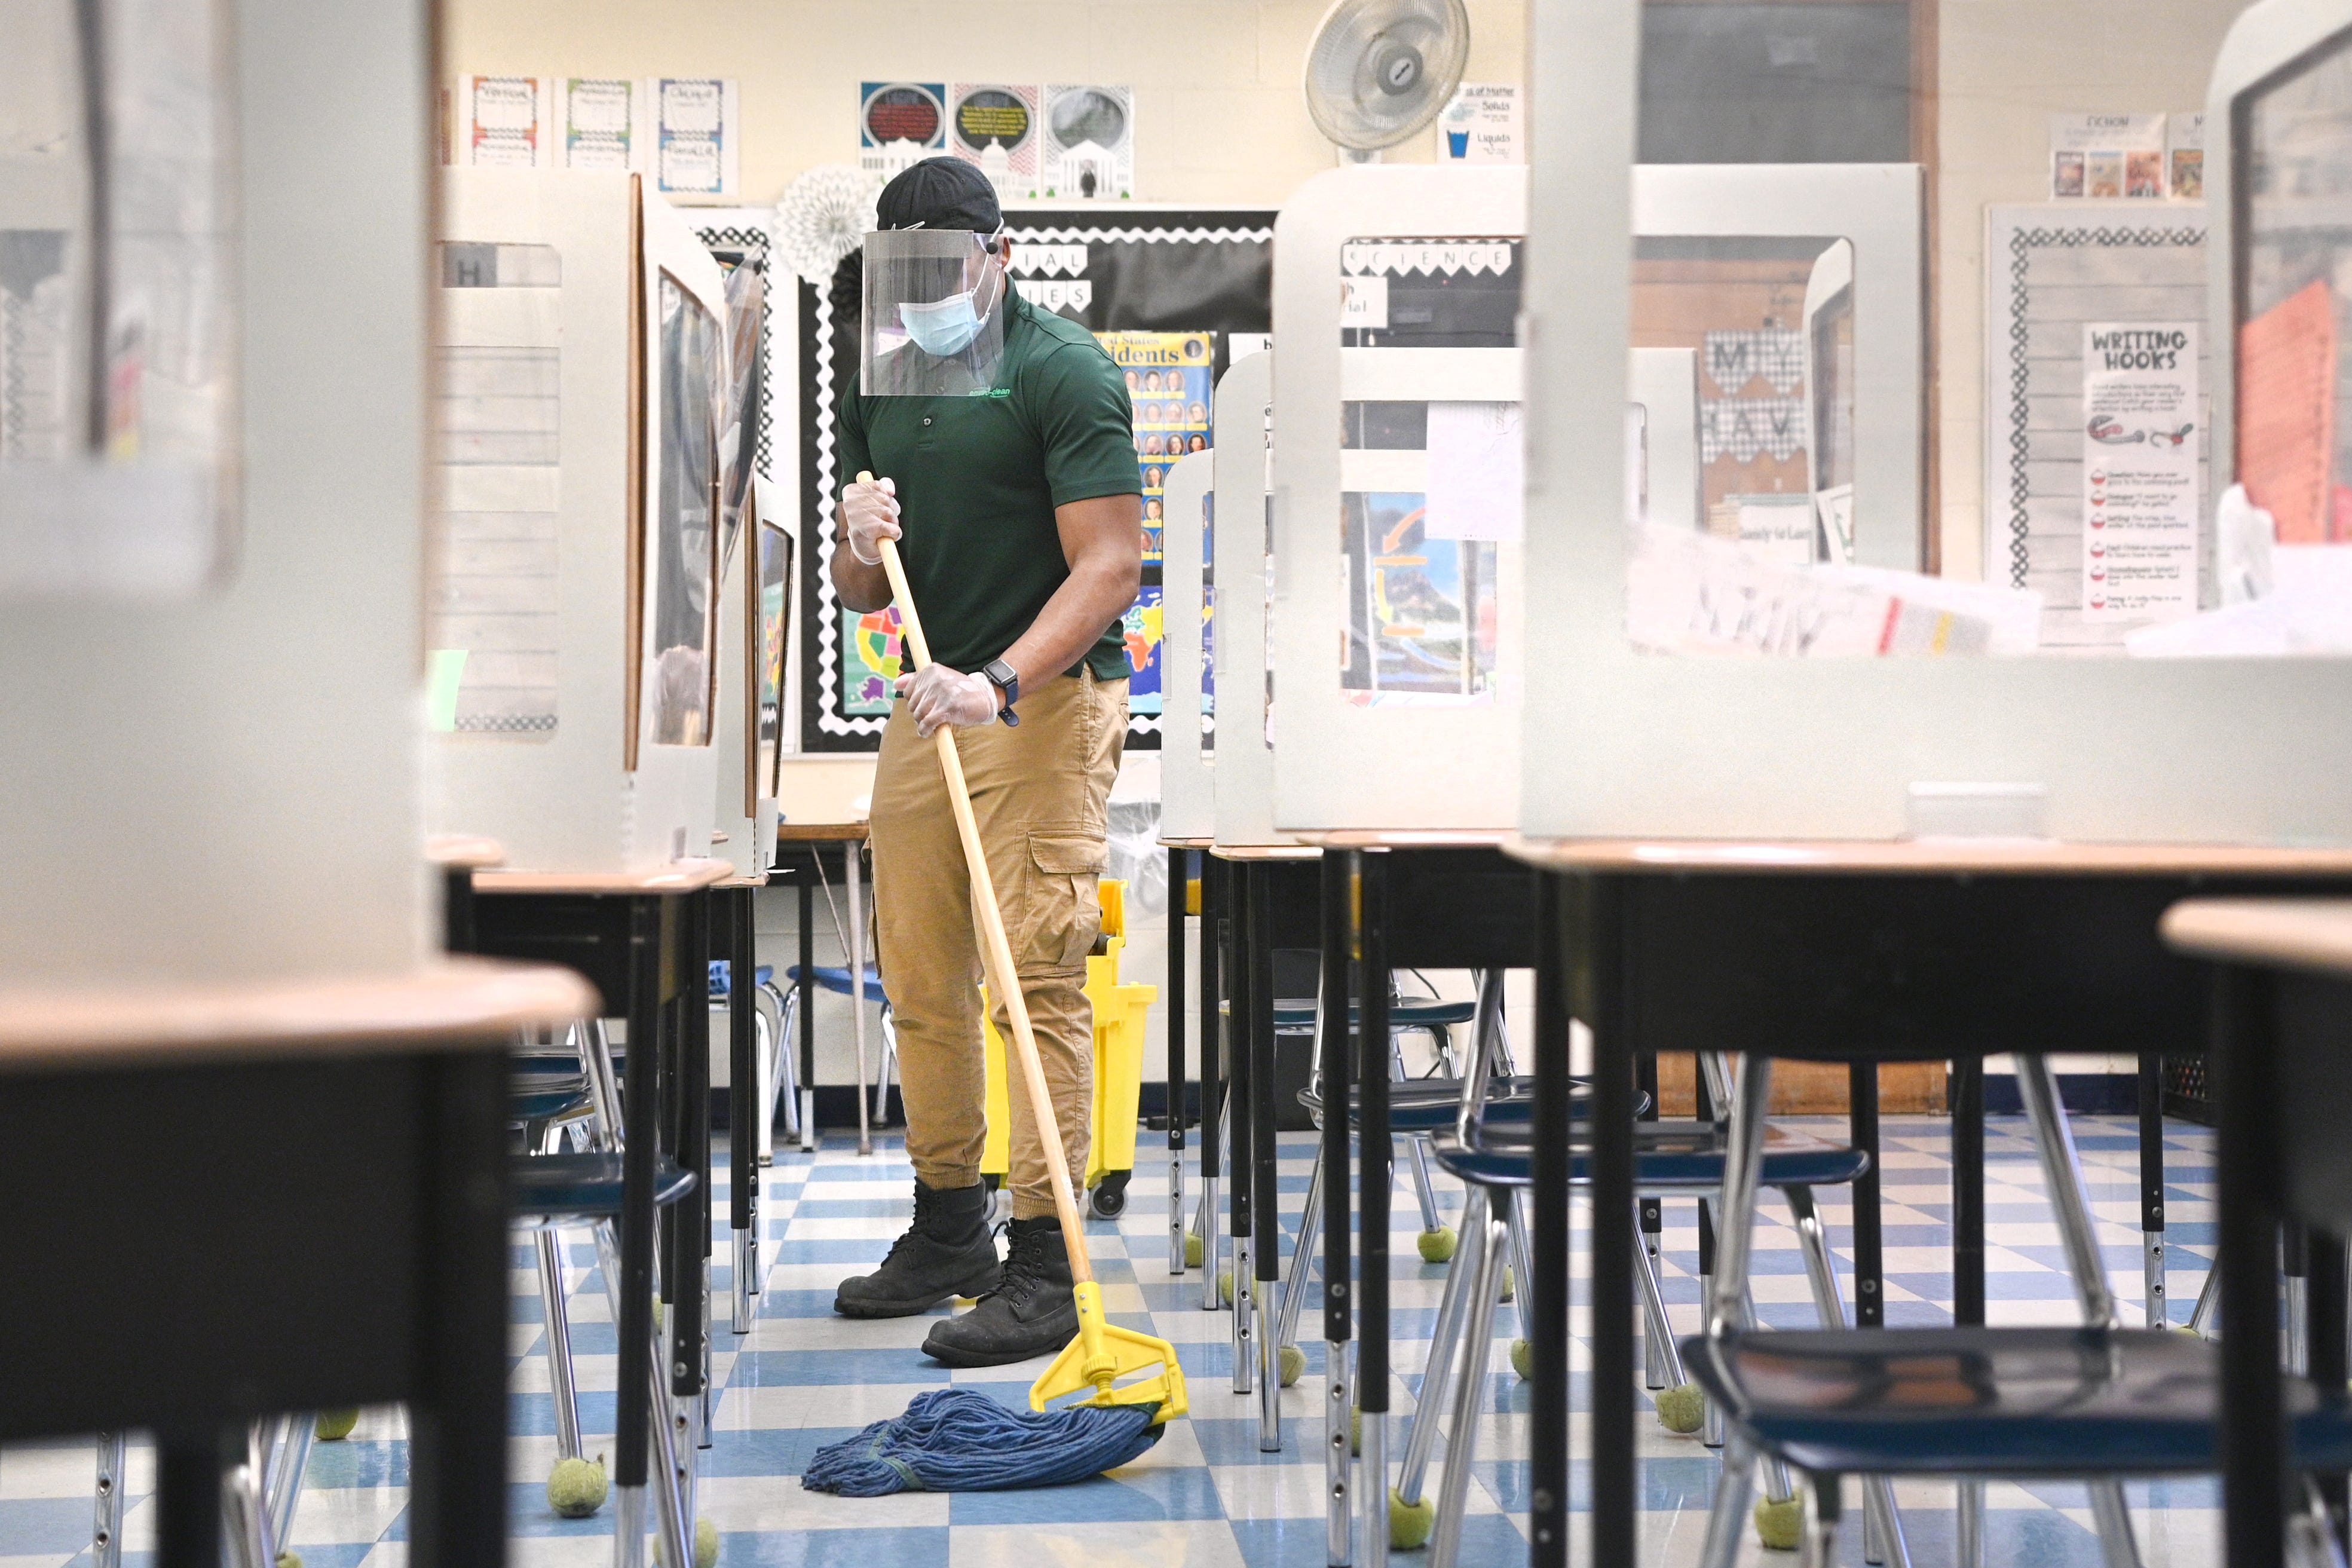 Johnathan Land mops a classroom floor at Bedford Elementary School in Dearborn Heights